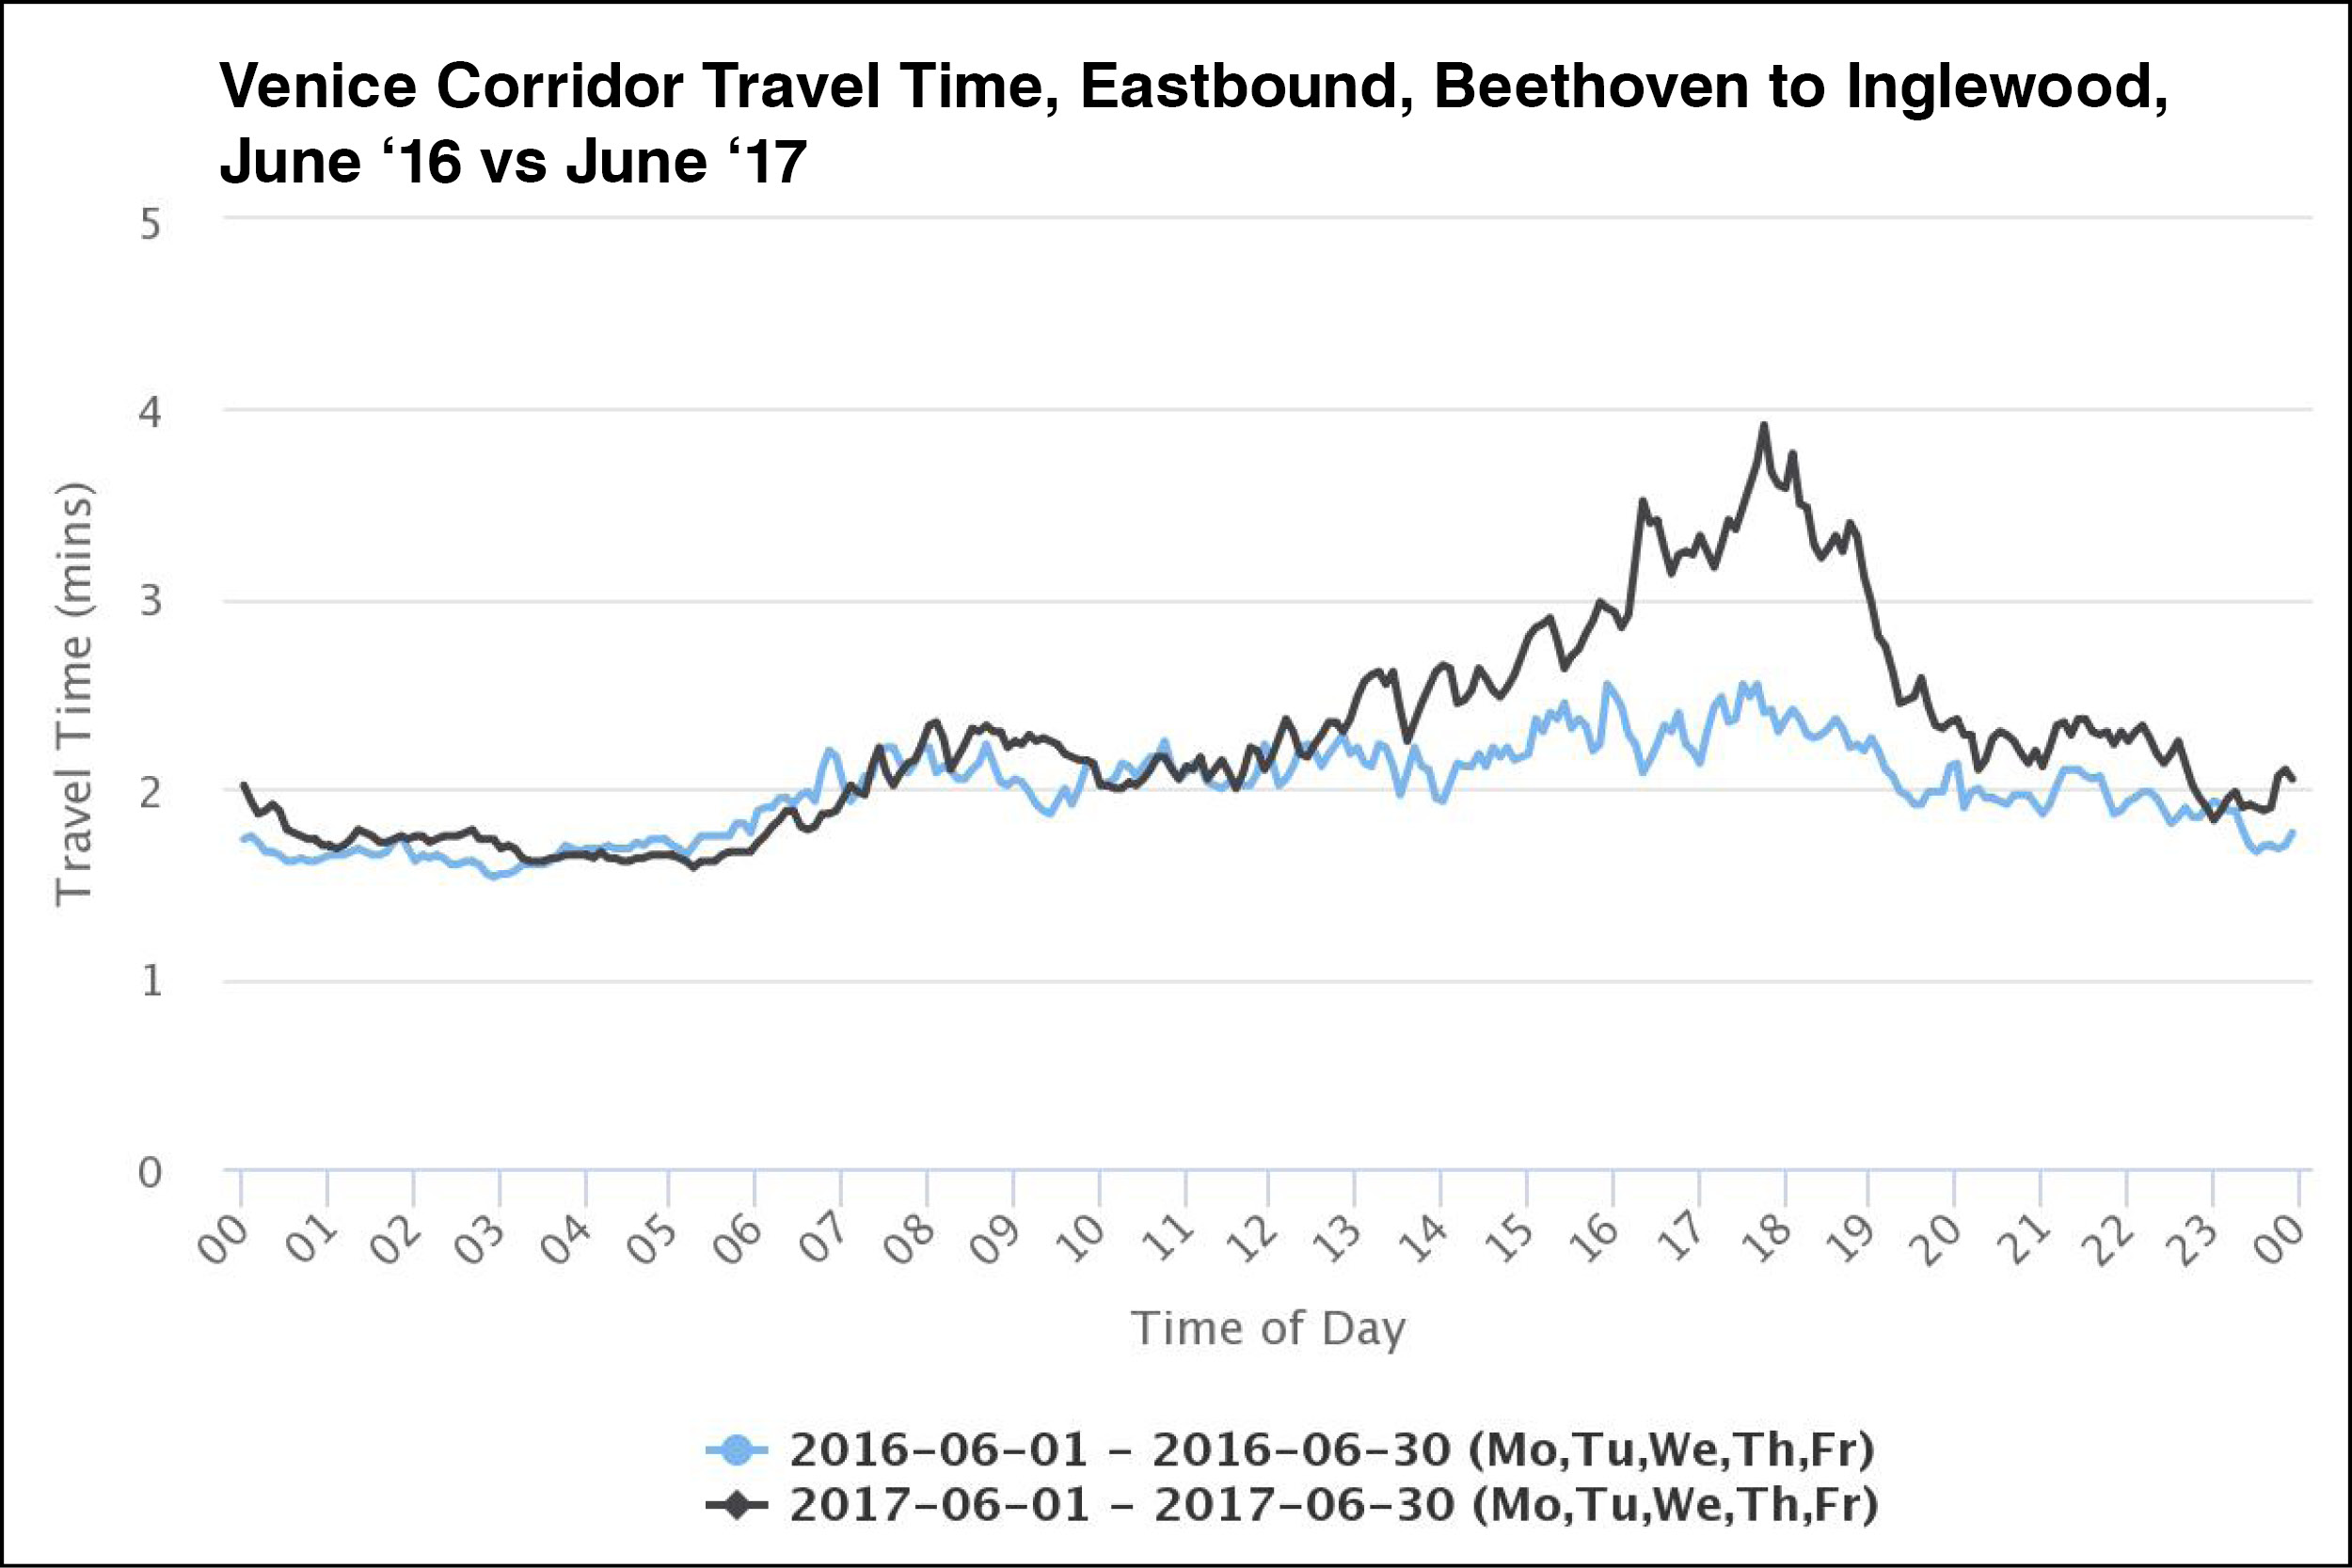 June 2017 travel times in the eastbound direction were up to 90 seconds higher during PM rush hour. Otherwise, for most of the day, travel times were similar to June 2016 before the project was installed.